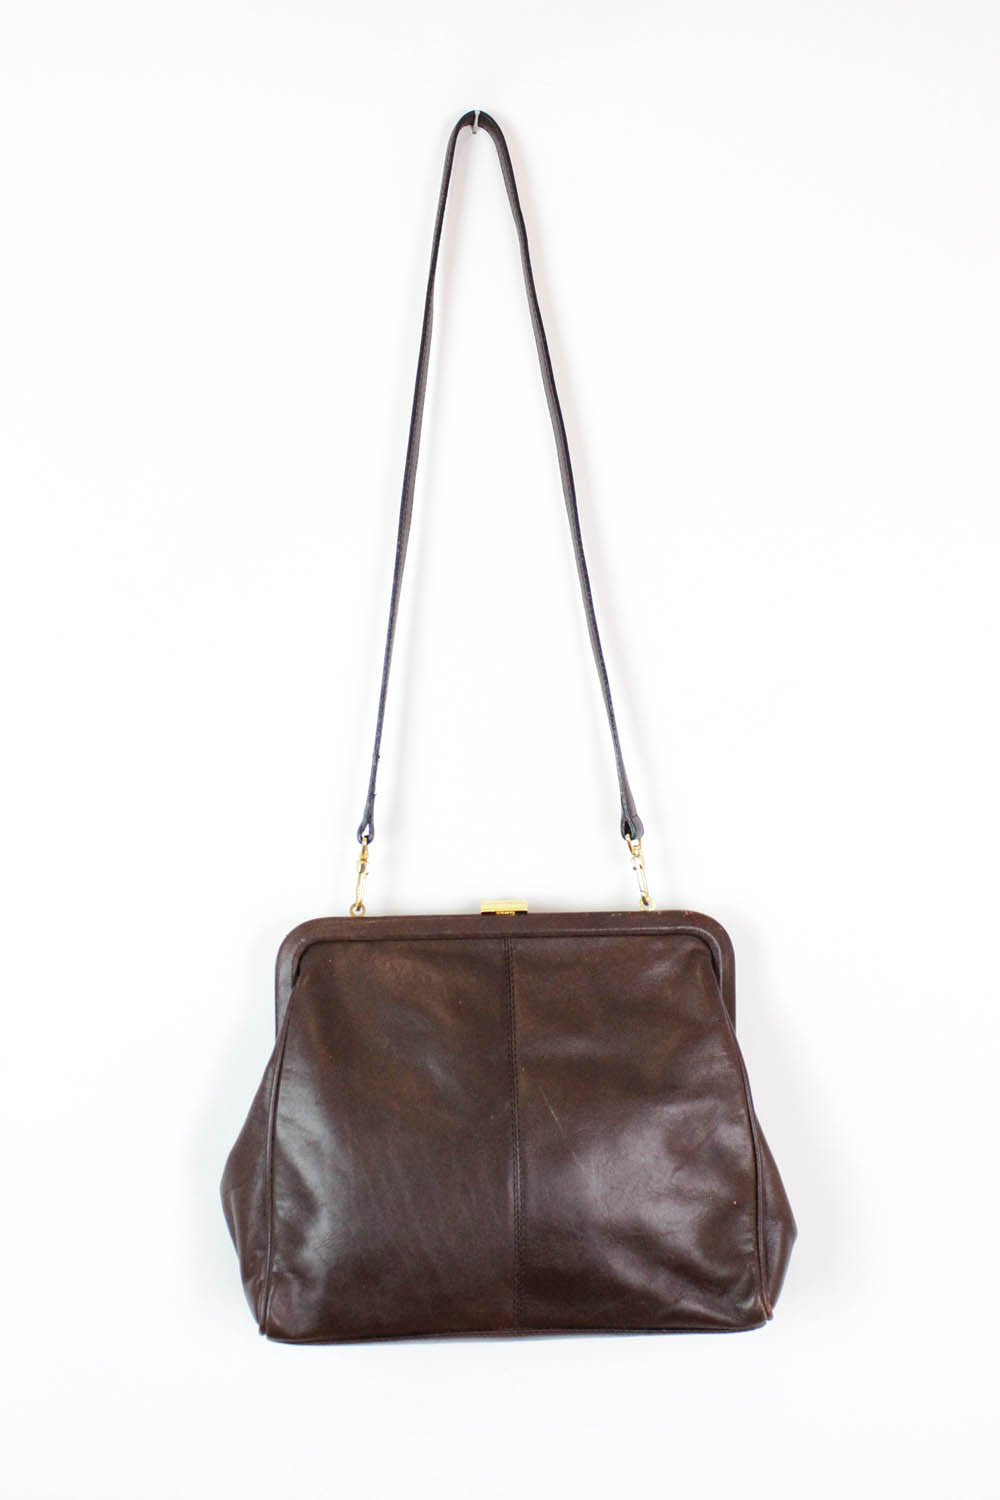 Etienne Aigner Woven Leather Bag